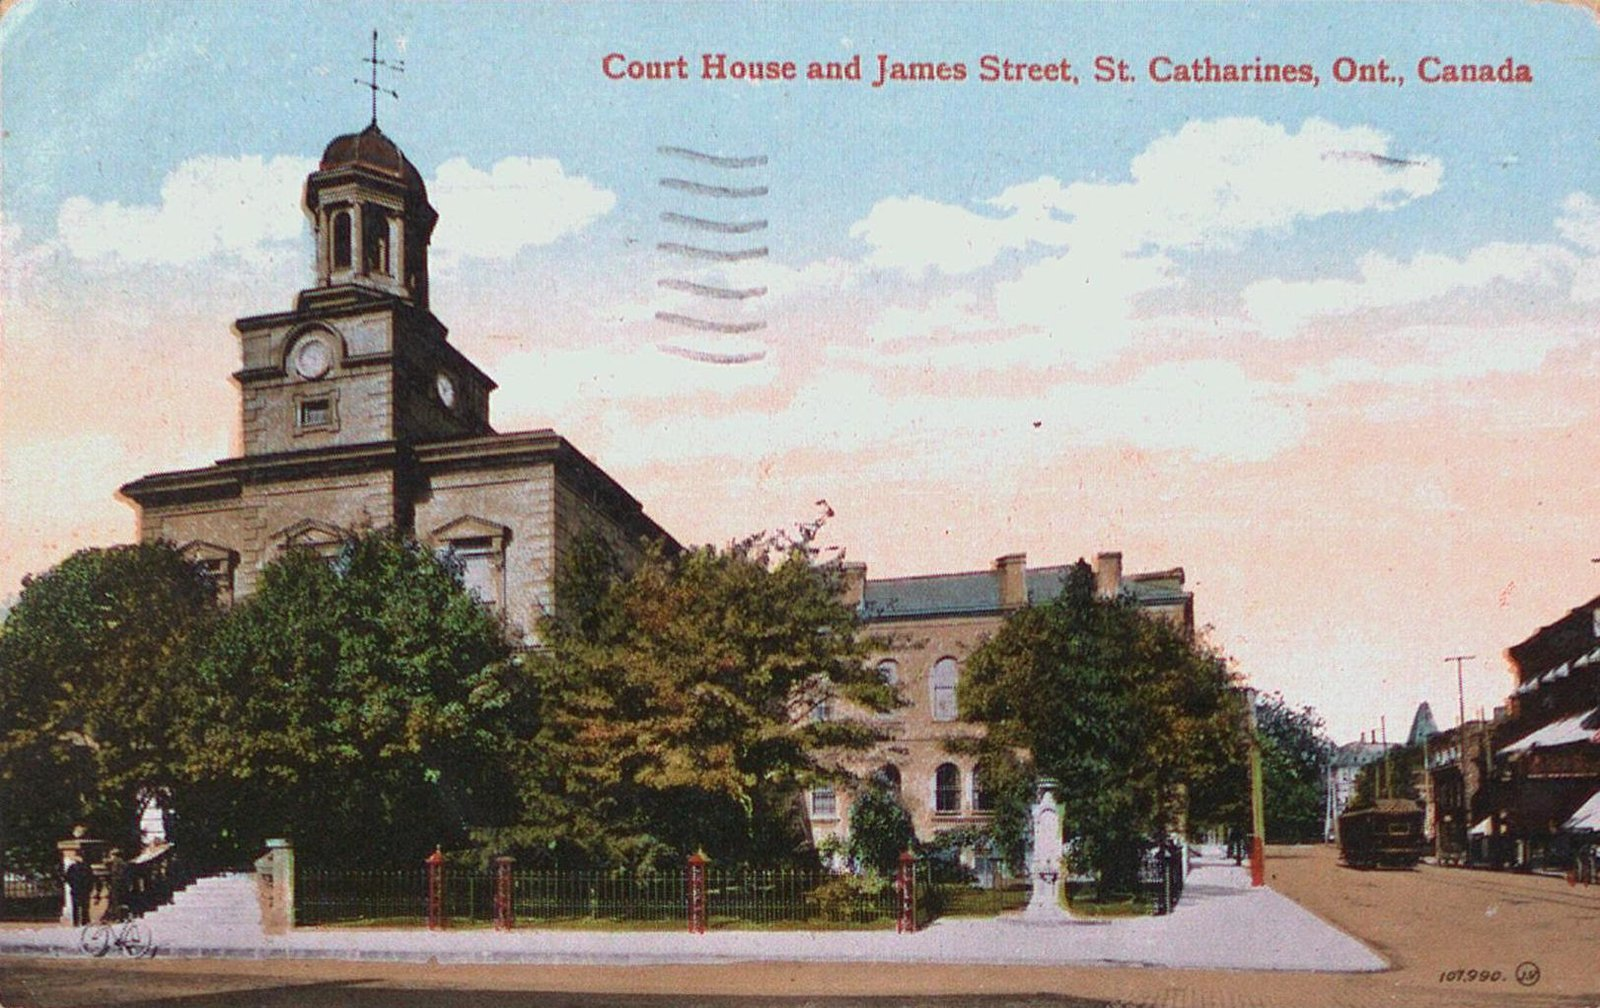 The Court House and James Street